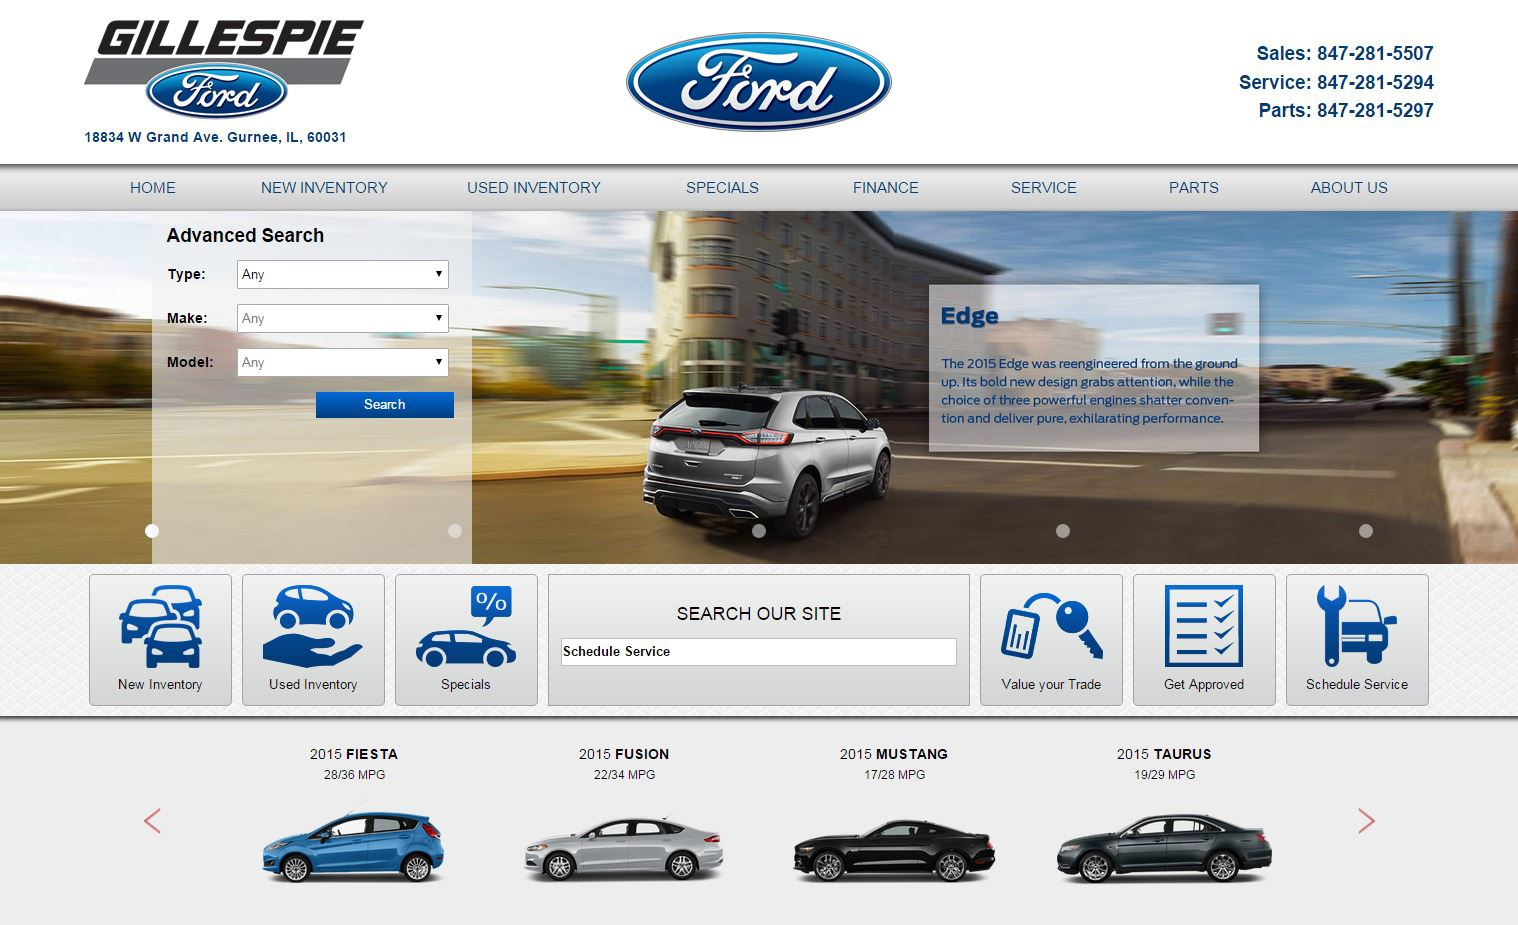 Gillespie Ford preview